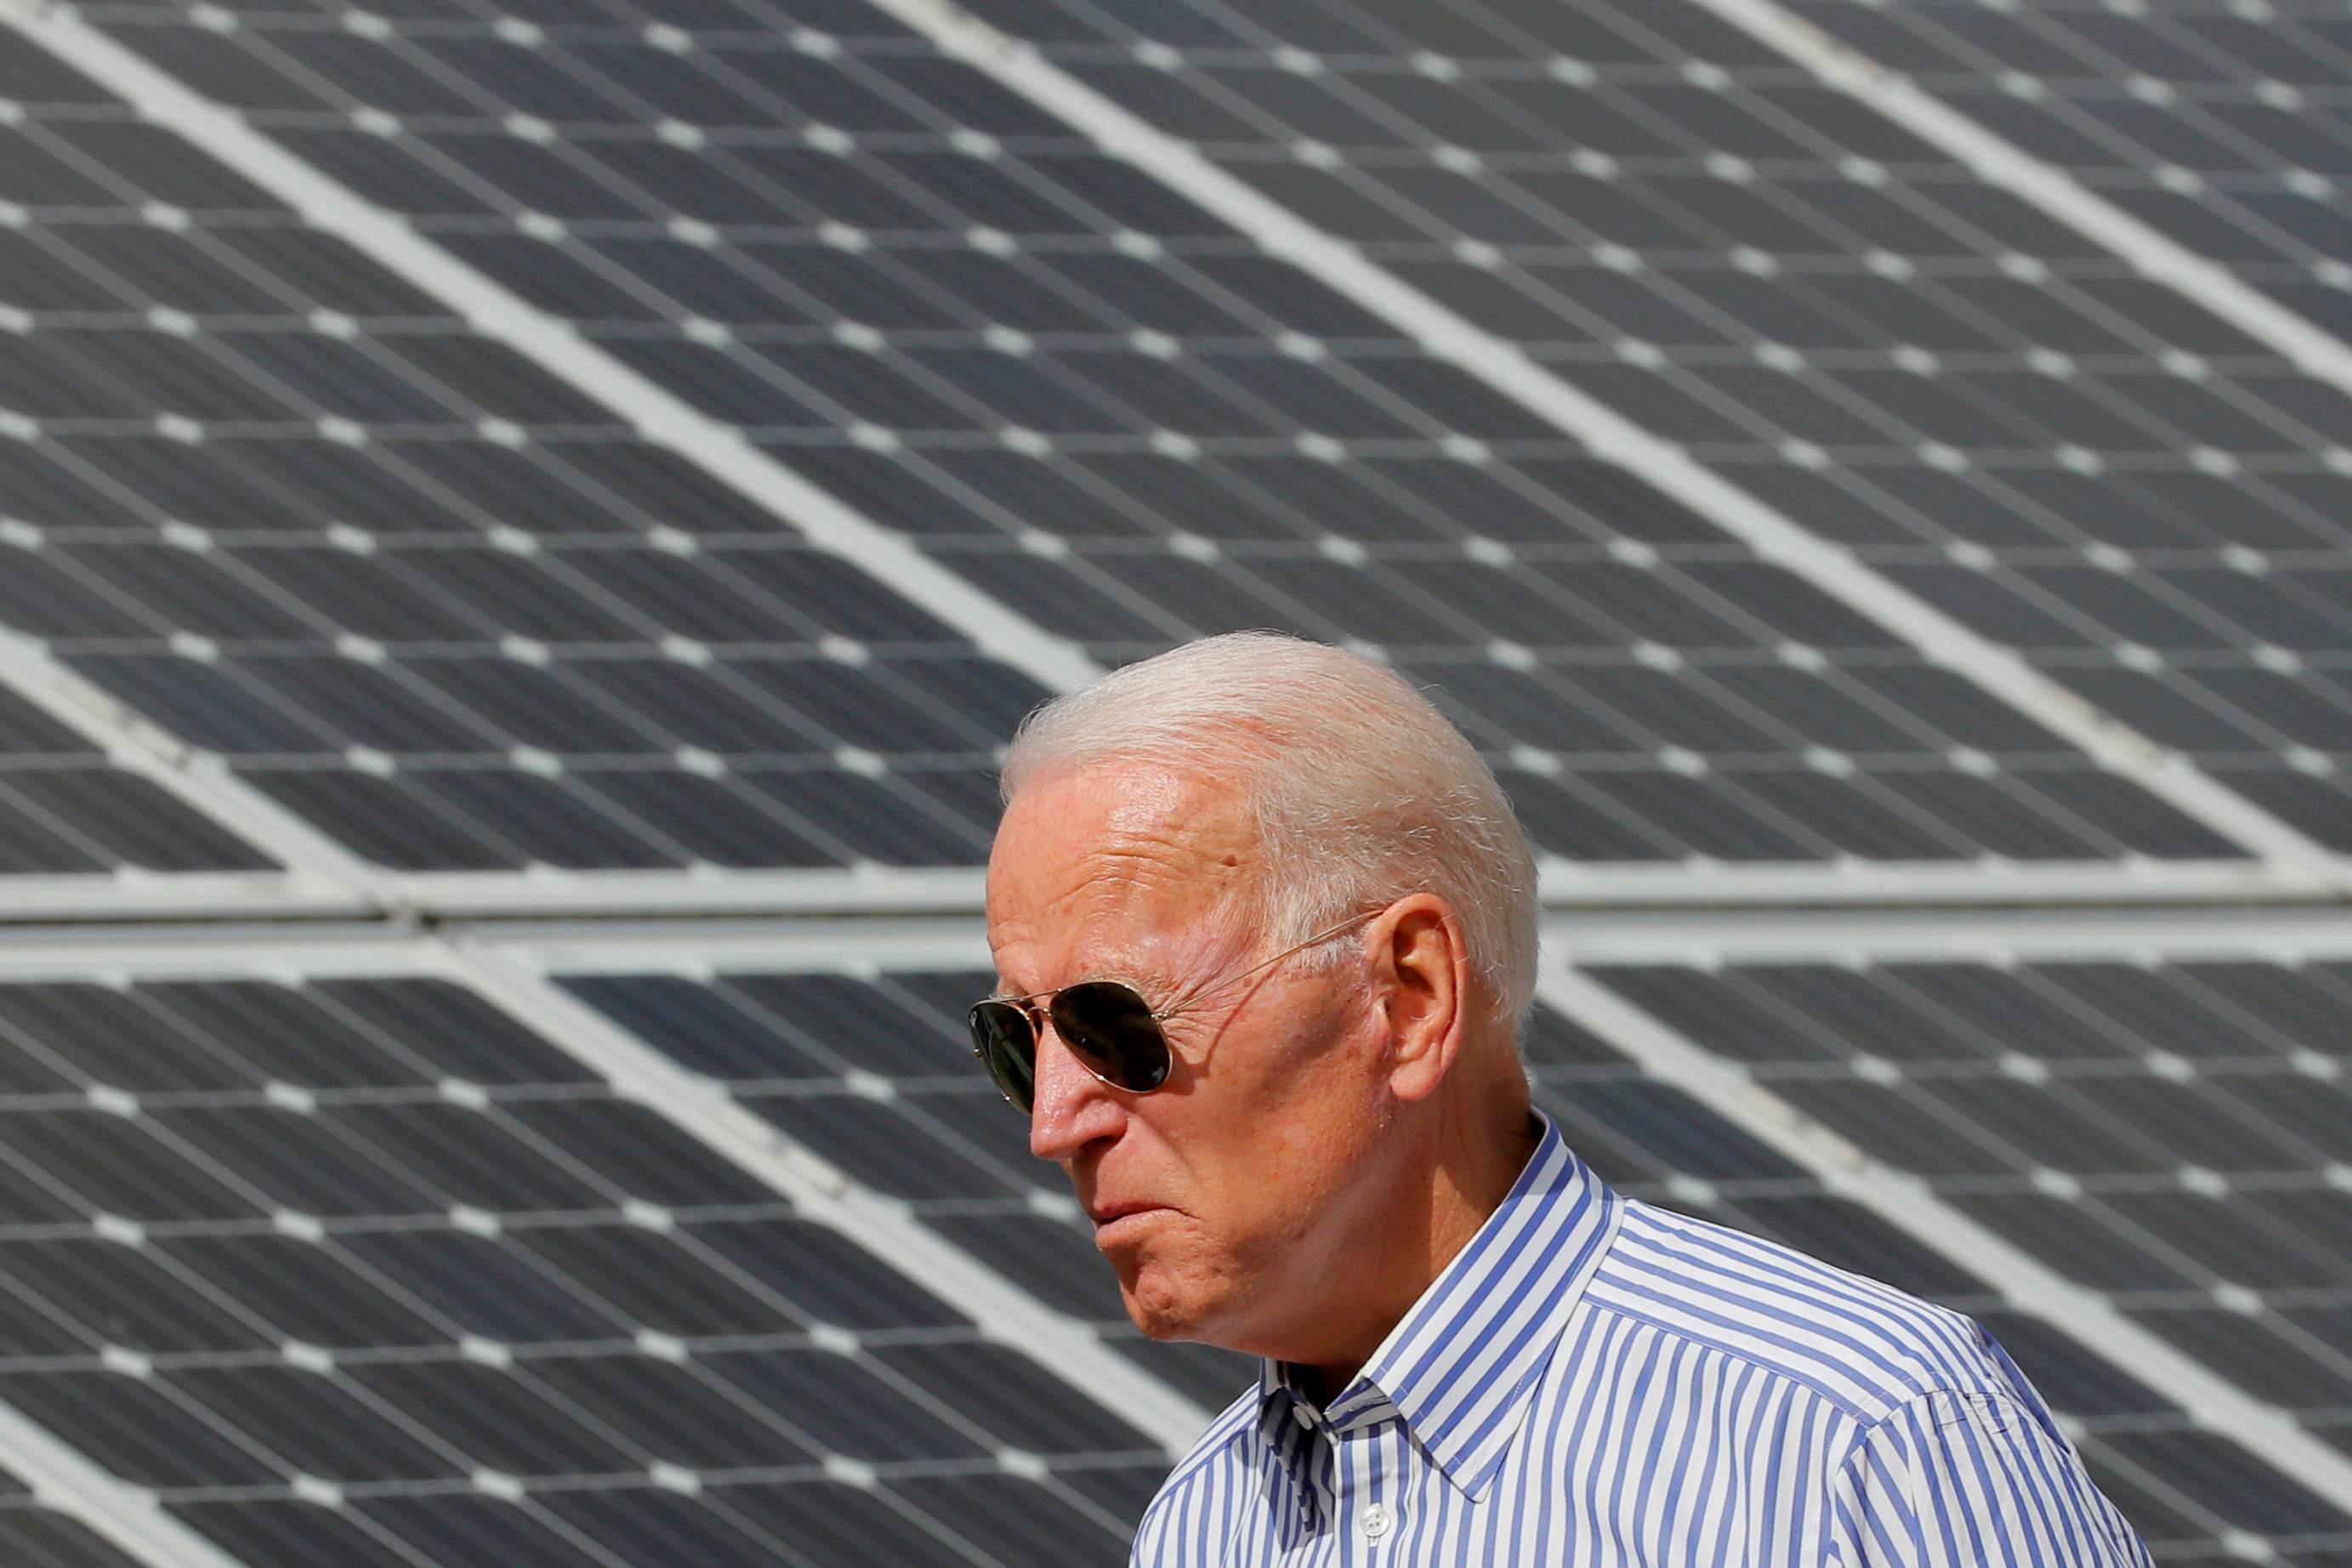 Democratic 2020 U.S. presidential candidate and former Vice President Joe Biden walks past solar panels while touring the Plymouth Area Renewable Energy Initiative in Plymouth, New Hampshire, U.S., June 4, 2019.   REUTERS/Brian Snyder